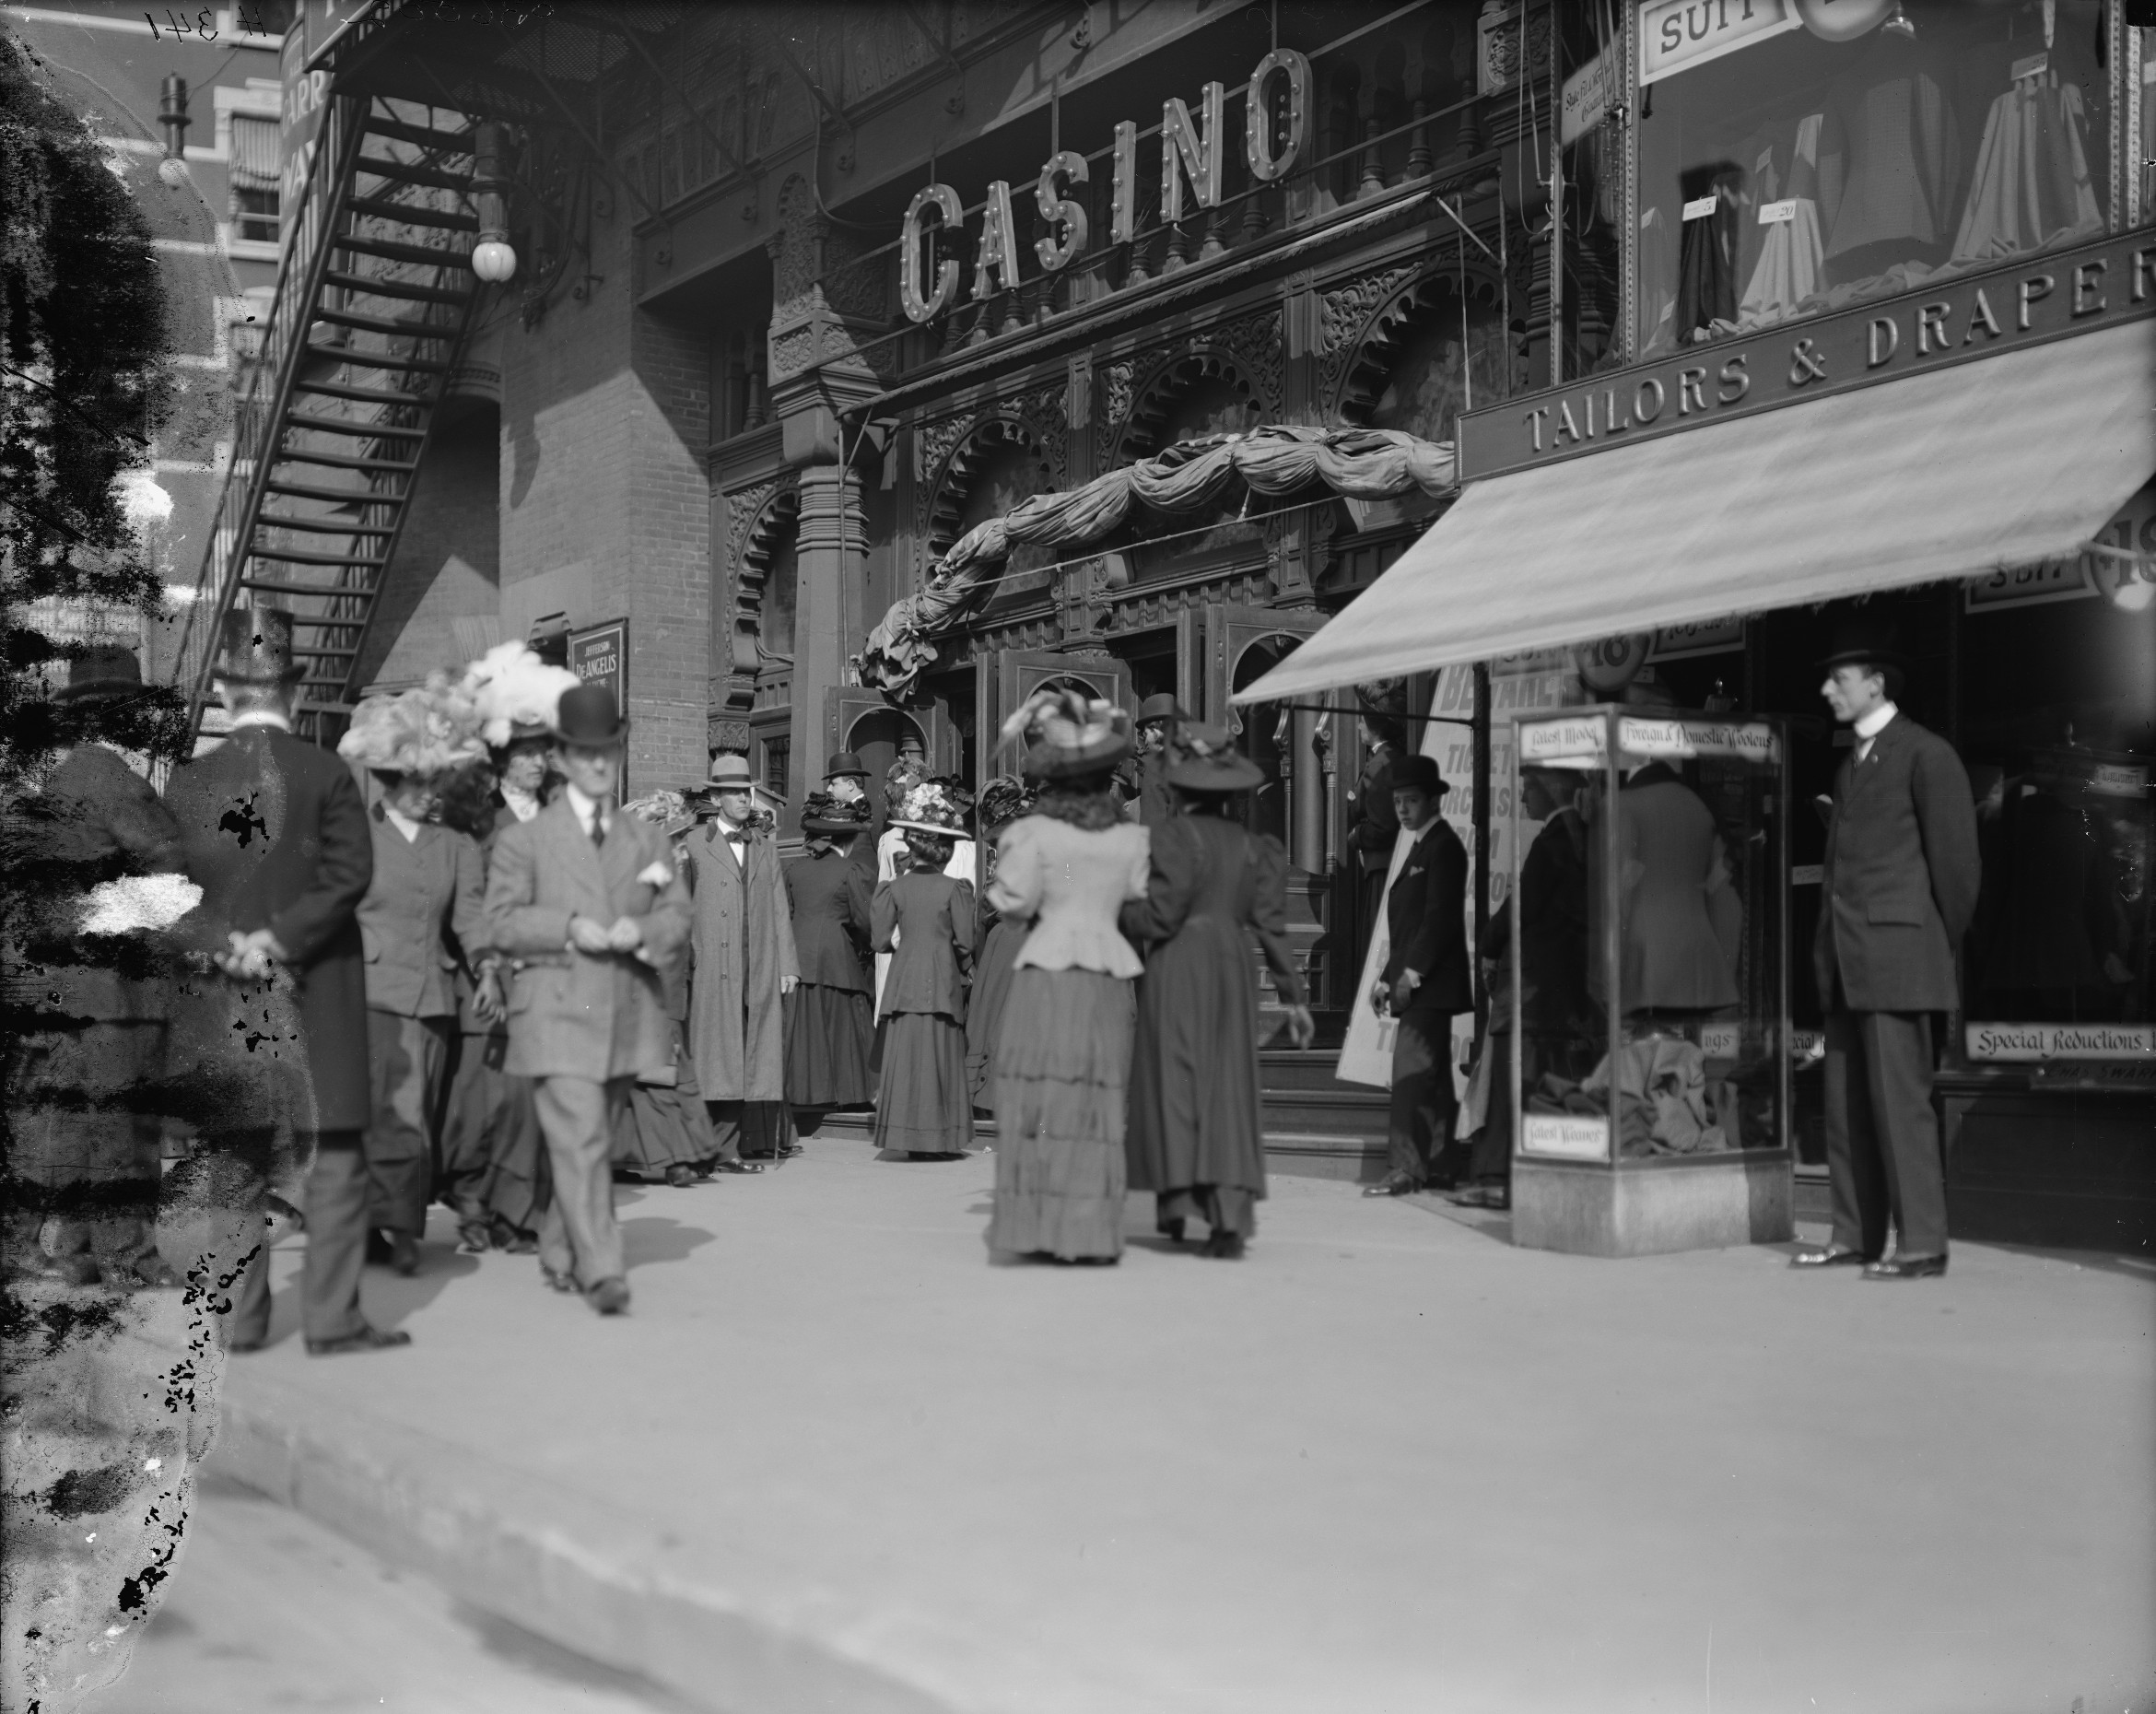 Old New York In Photos #98 - Outside The Casino Theatre Broadway & 39th Street 1907